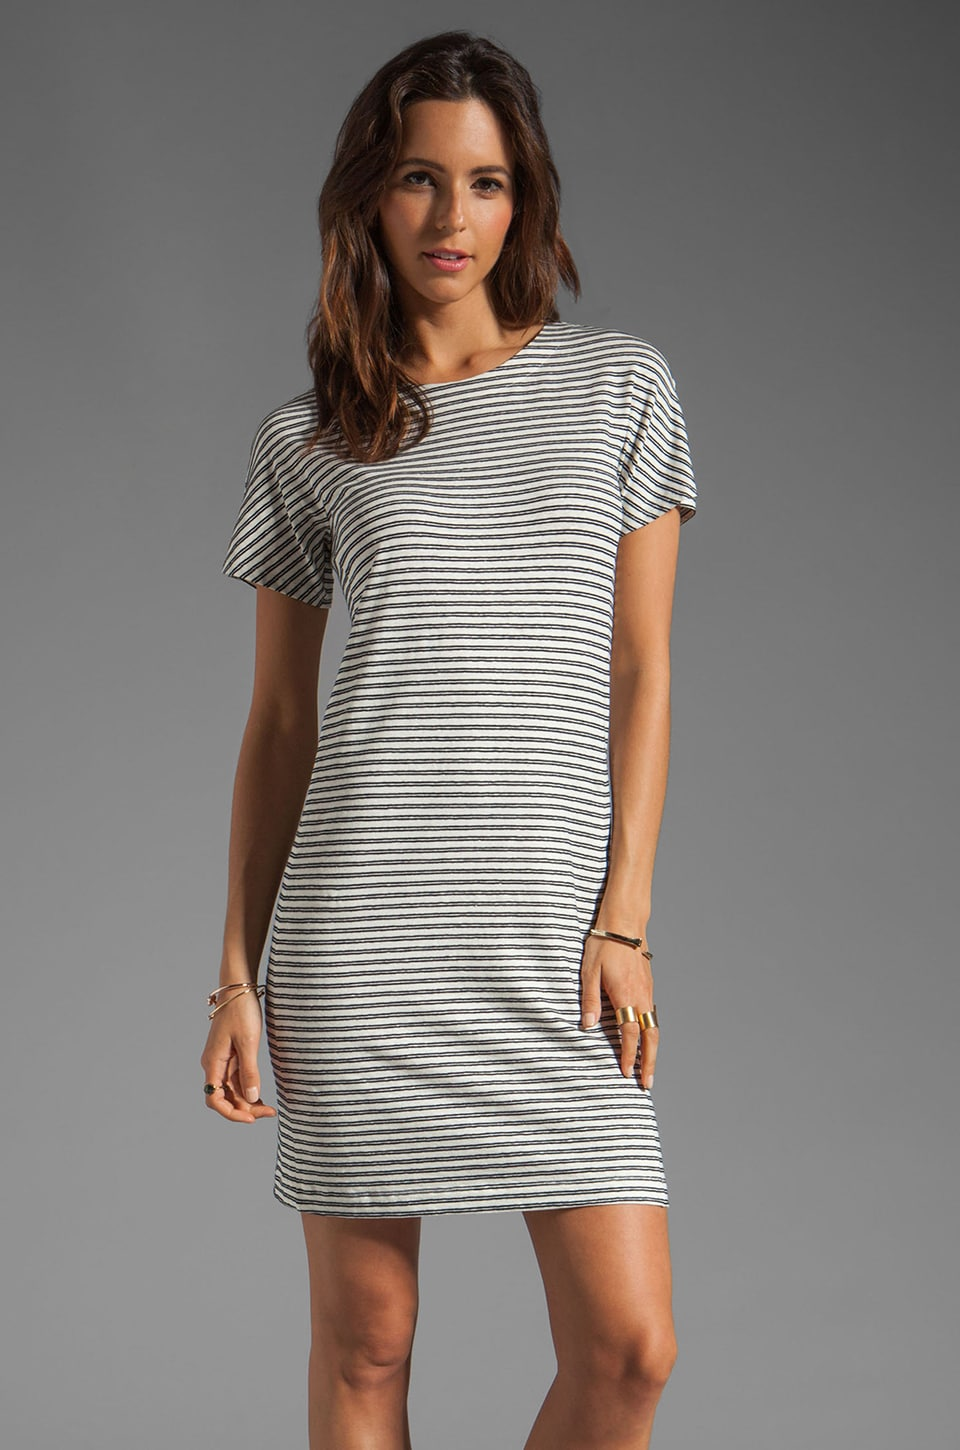 Theory Meru Adiany B Striped Jersey Dress in White/Deep Navy